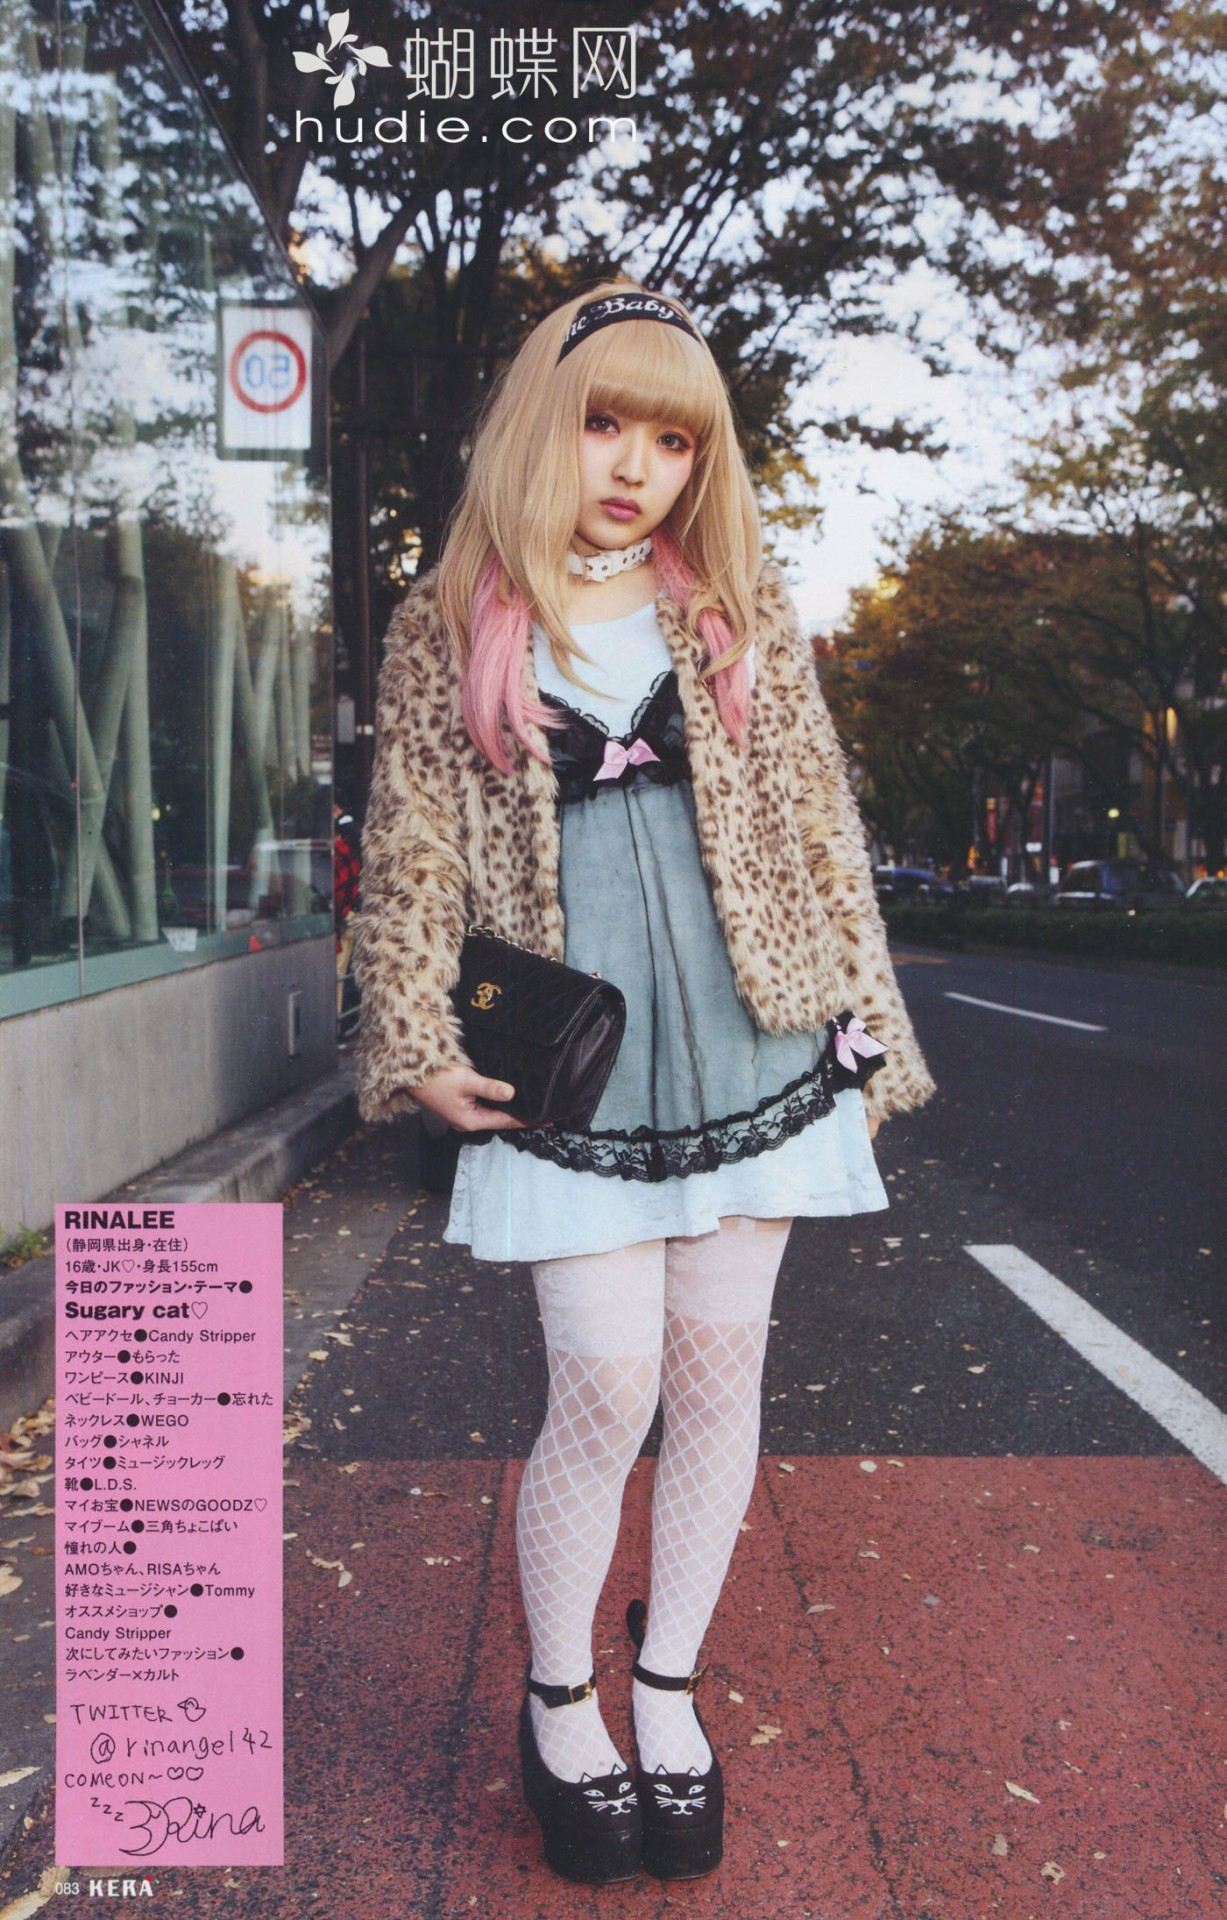 I know this isn't pastel goth, but she looks so gorgeous here ❤